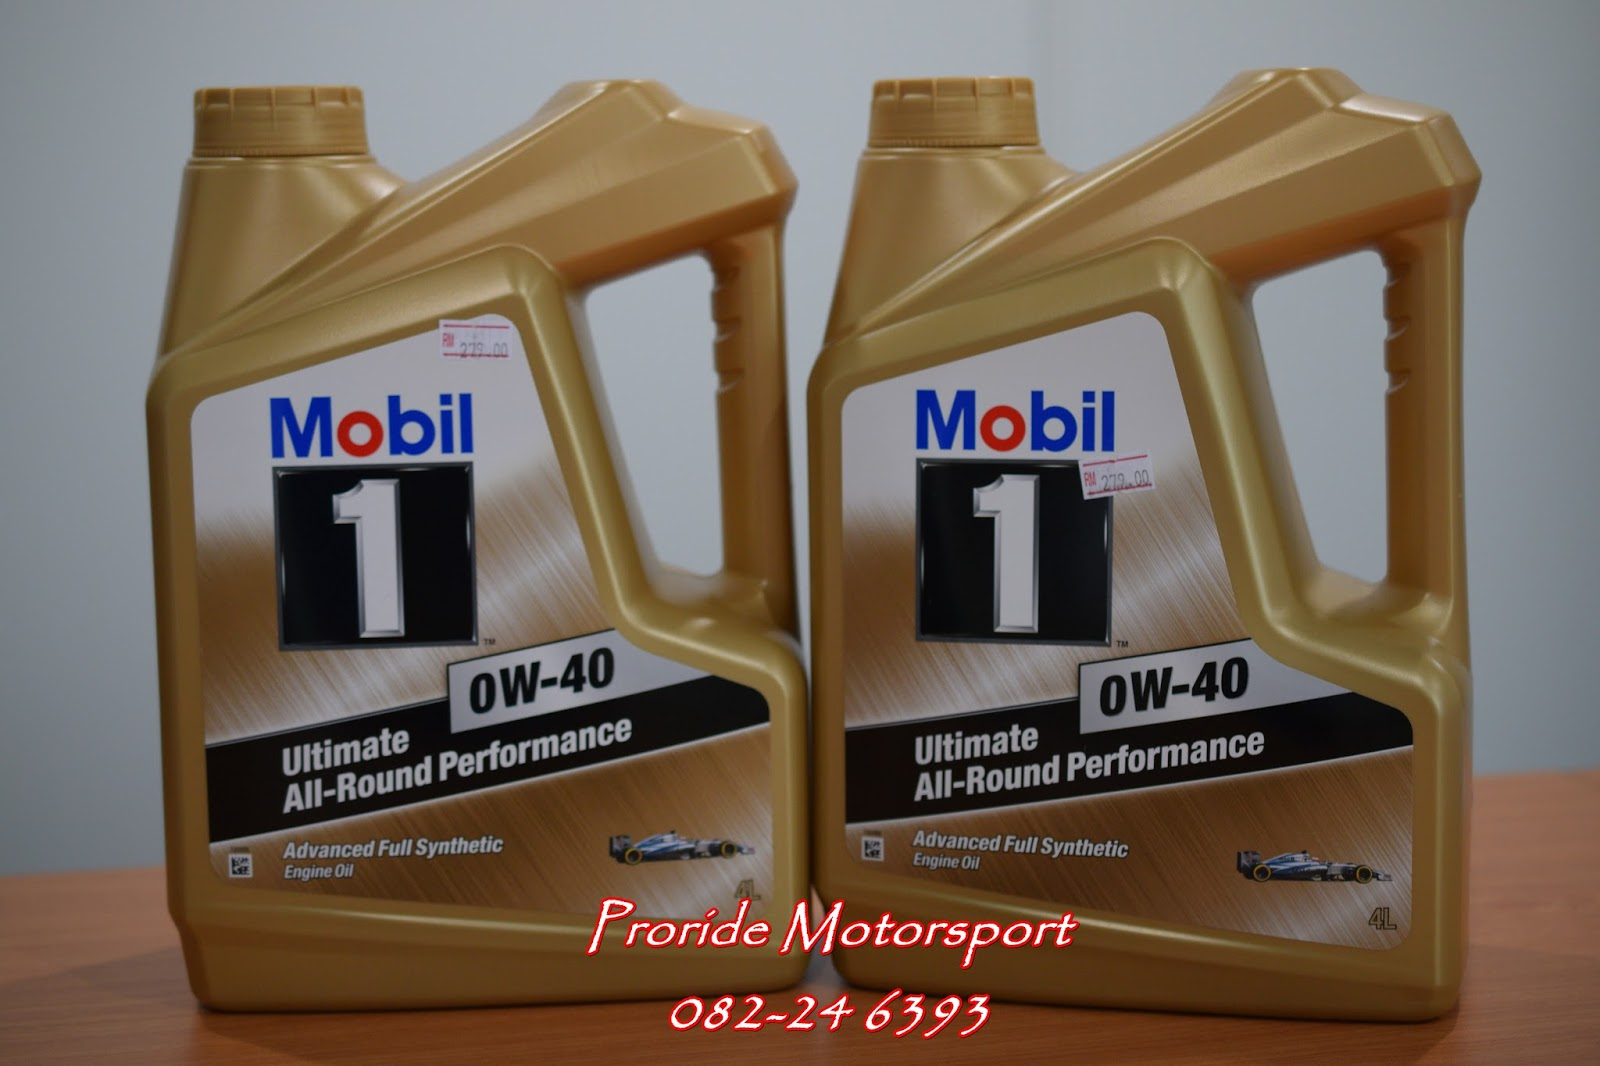 pro ride motorsports mobil1 0w 40 advanced full synthetic. Black Bedroom Furniture Sets. Home Design Ideas